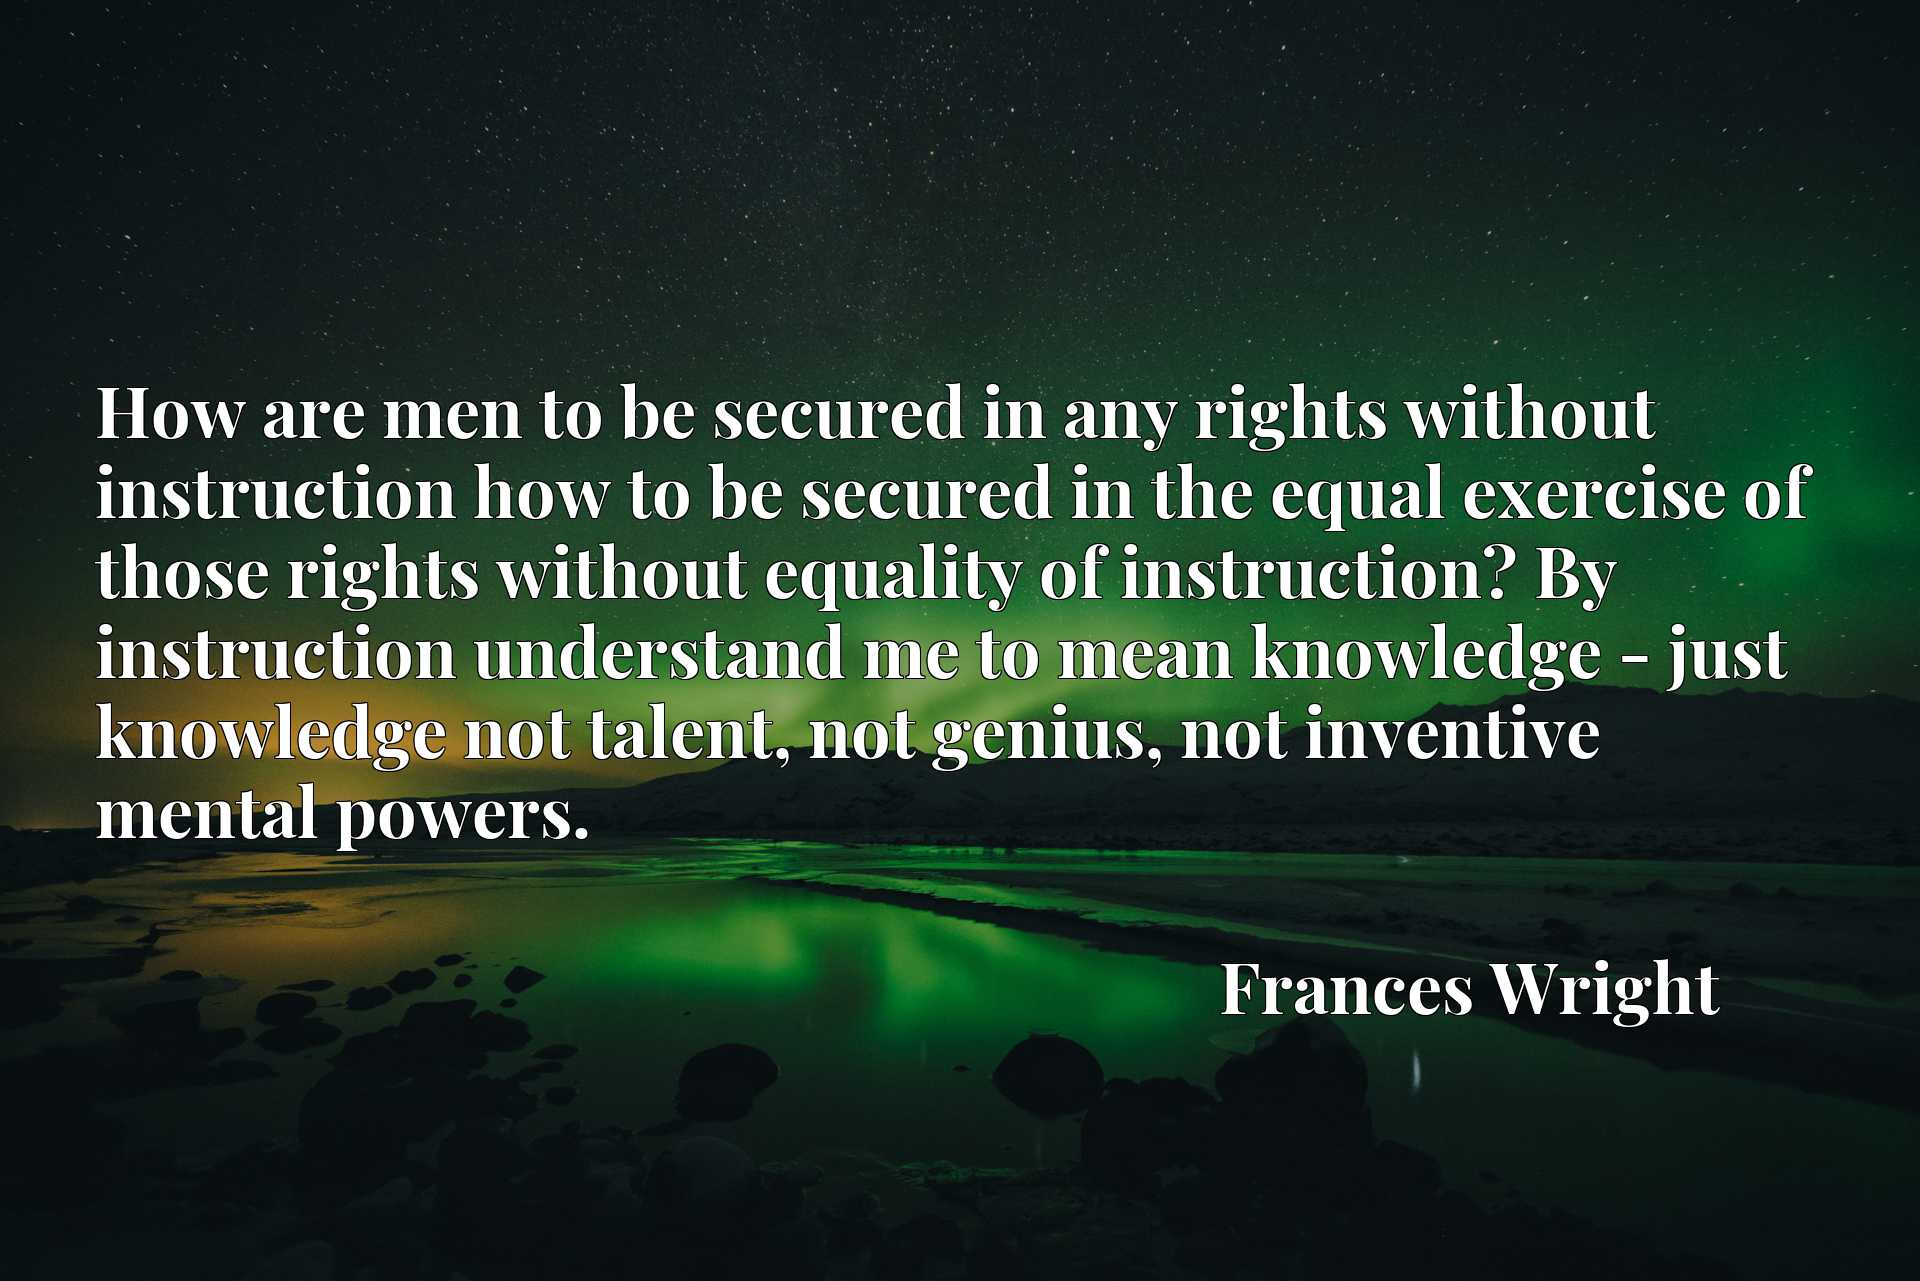 How are men to be secured in any rights without instruction how to be secured in the equal exercise of those rights without equality of instruction? By instruction understand me to mean knowledge - just knowledge not talent, not genius, not inventive mental powers.